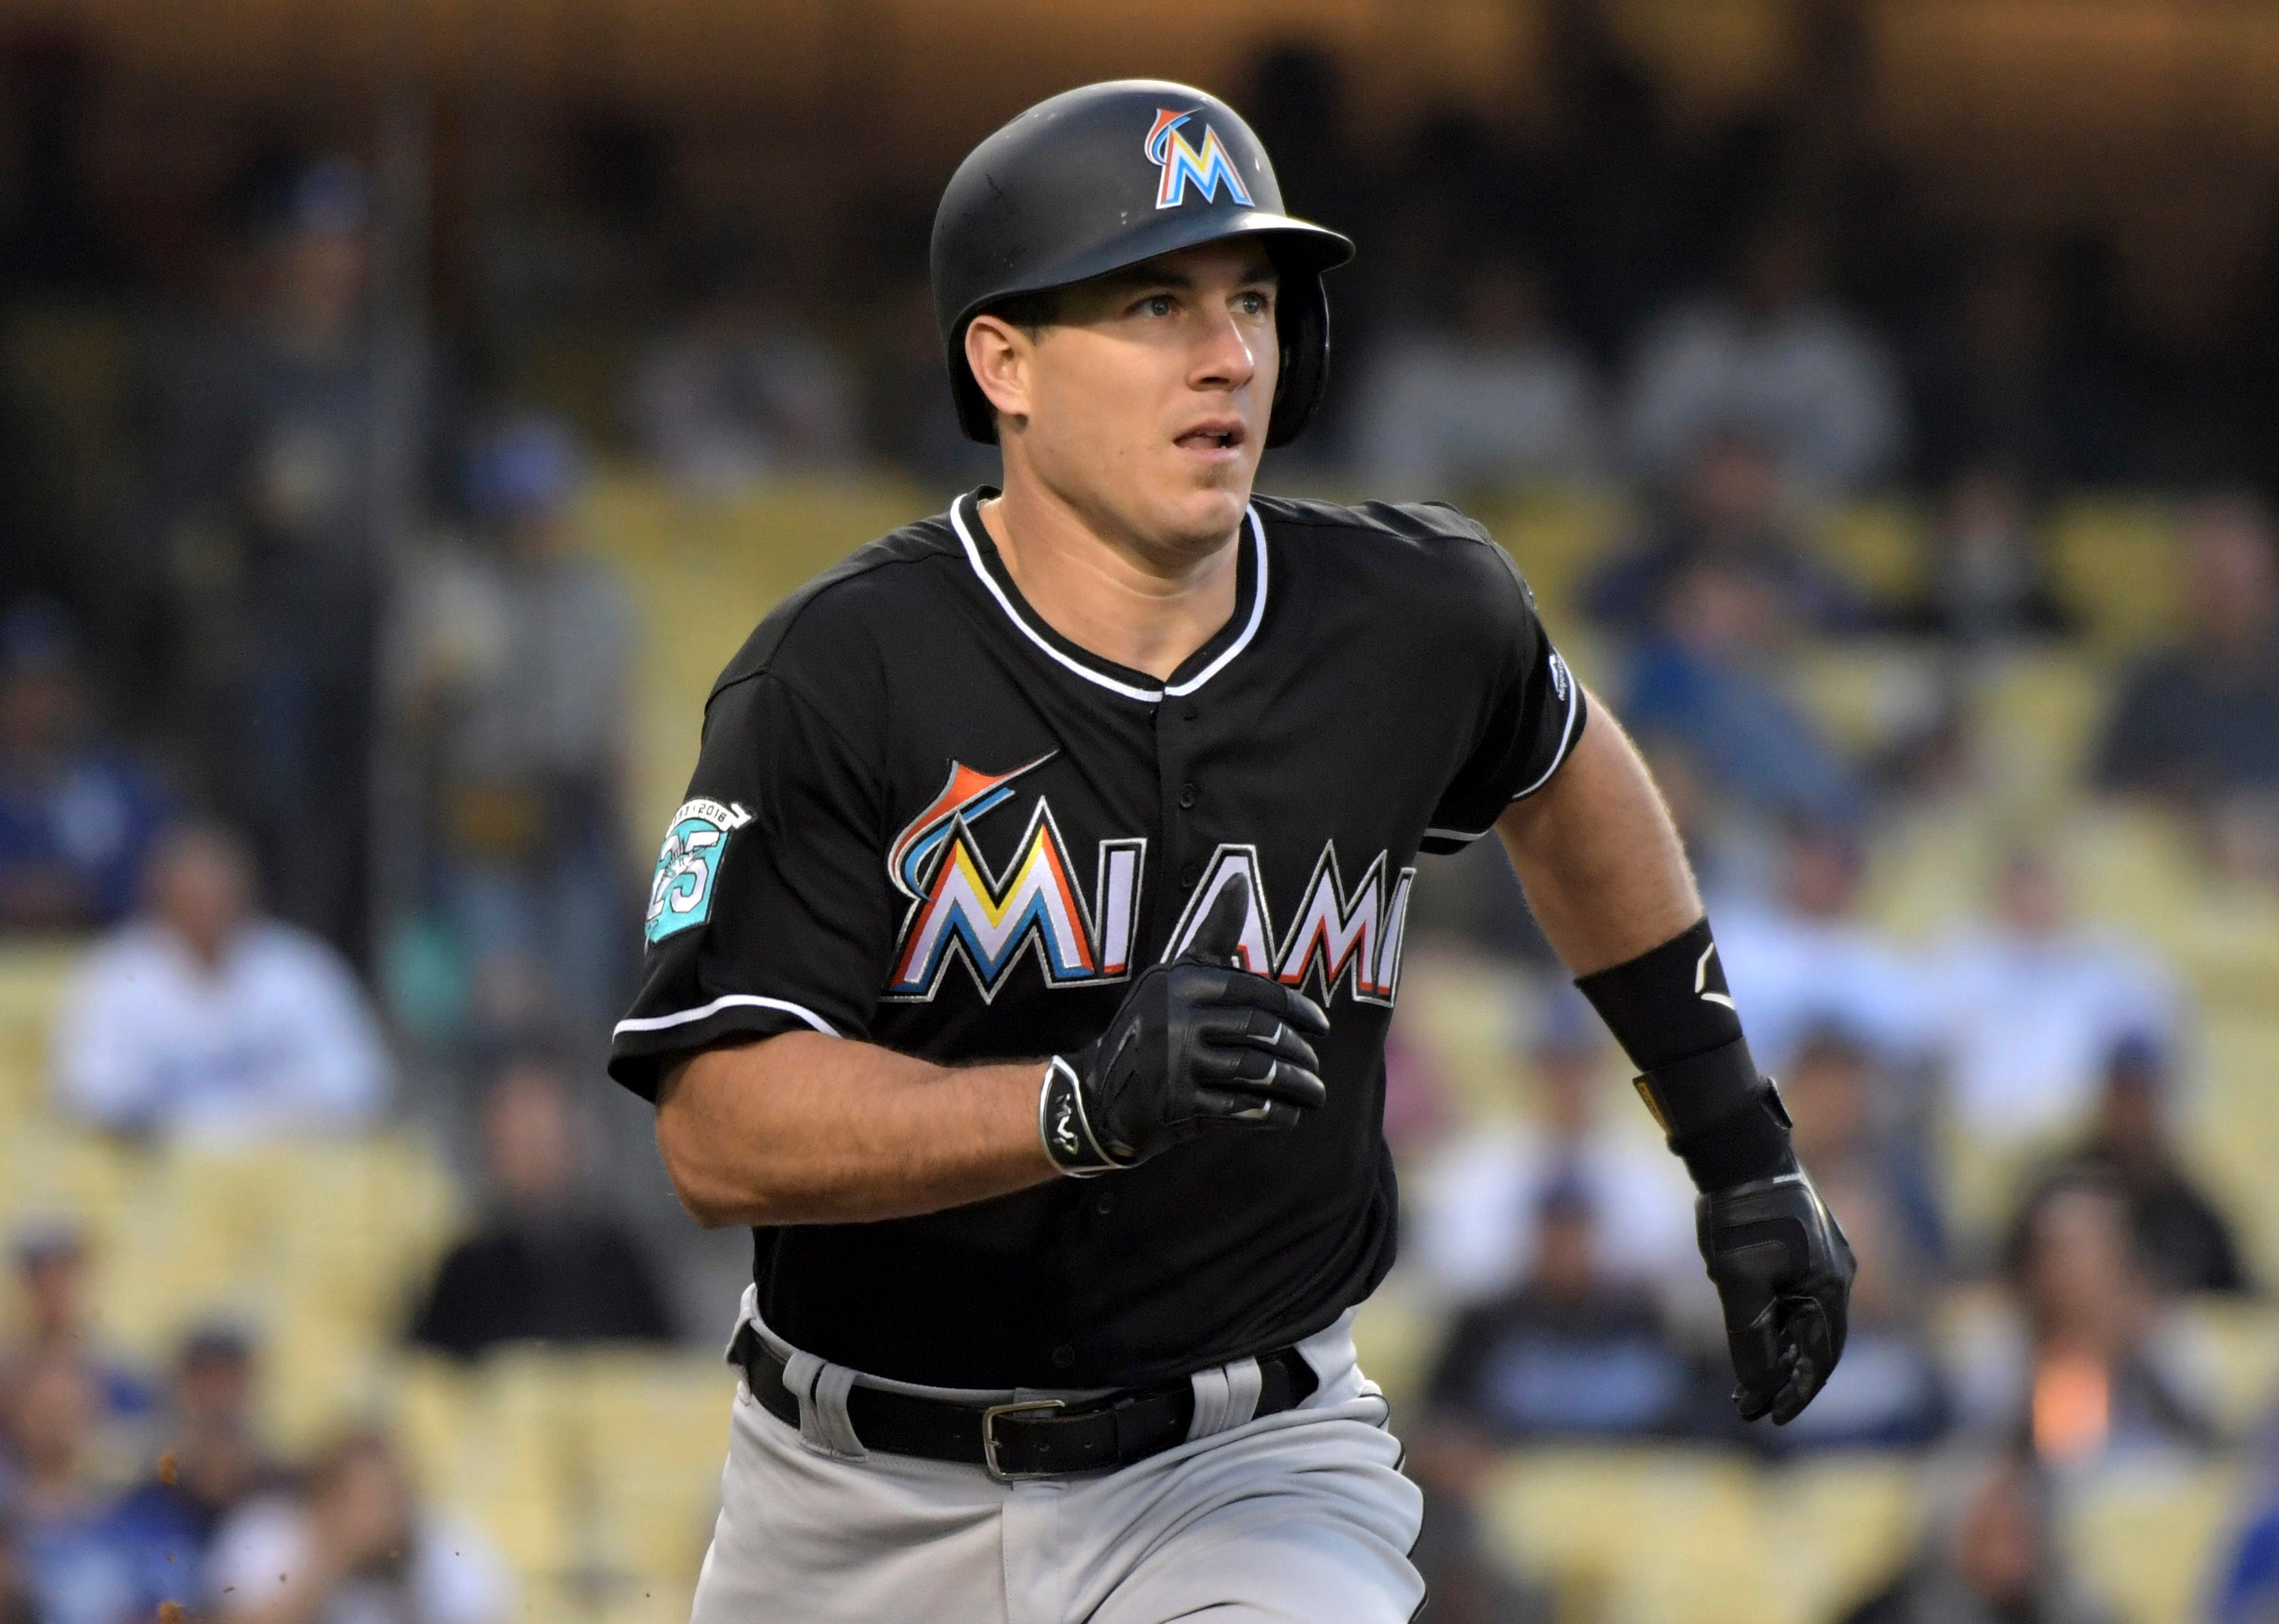 Feb. 7: The Marlins traded catcher J.T. Realmuto to the Phillies for catcher Jorge Alfaro, pitching prospects Sixto Sanchez and Will Stewart and international bonus slot money.